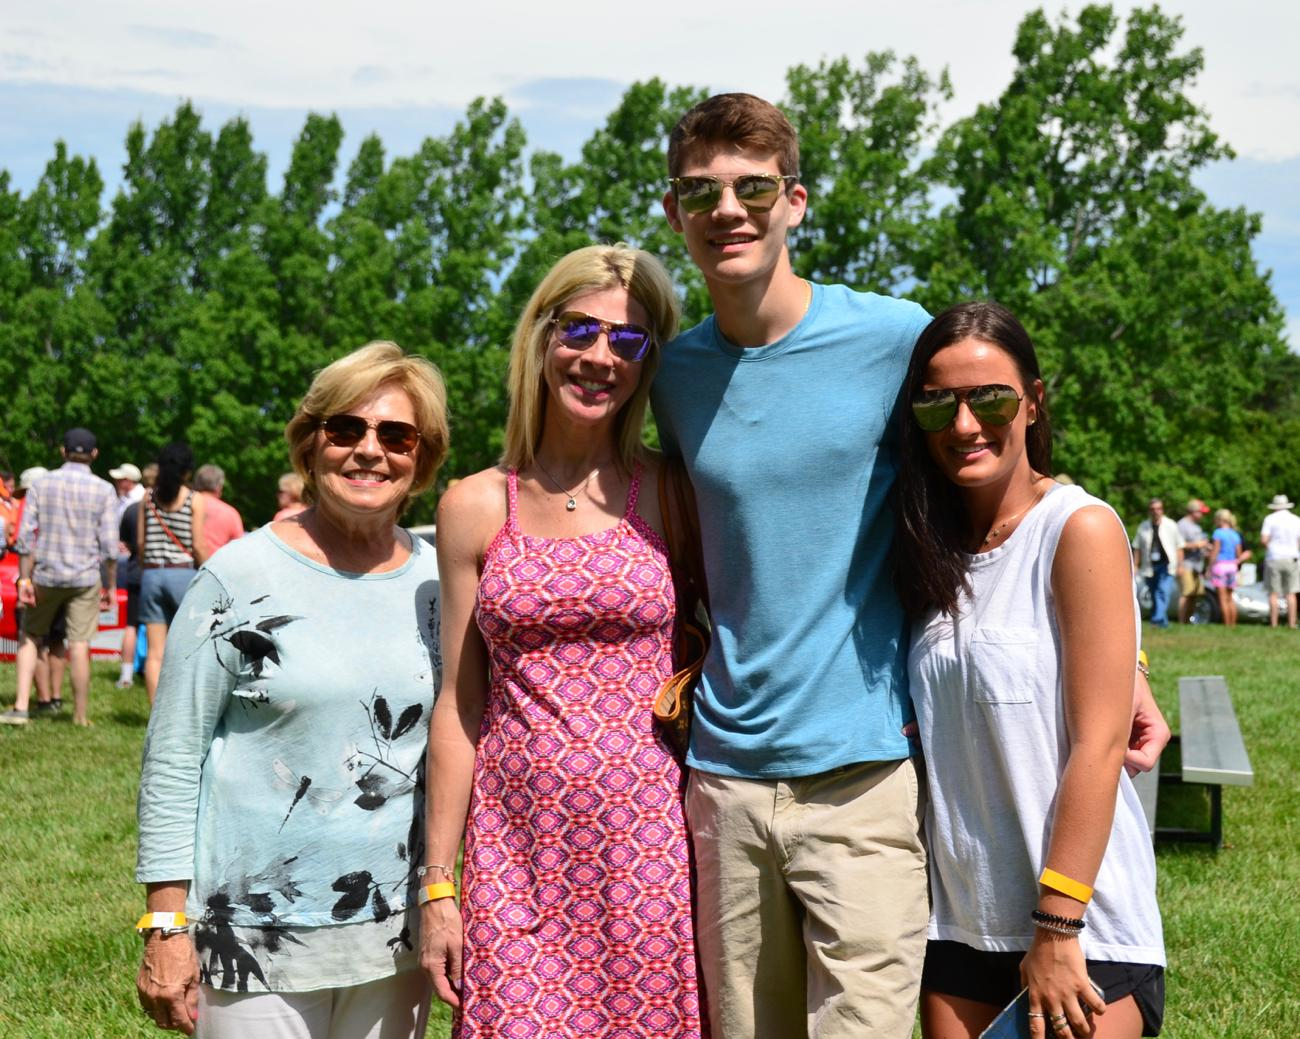 Marge and Megan Markley with Michael Drees and Jenna Pabodi / Image: Leah Zipperstein, Cincinnati Refined // Published: 6.11.18